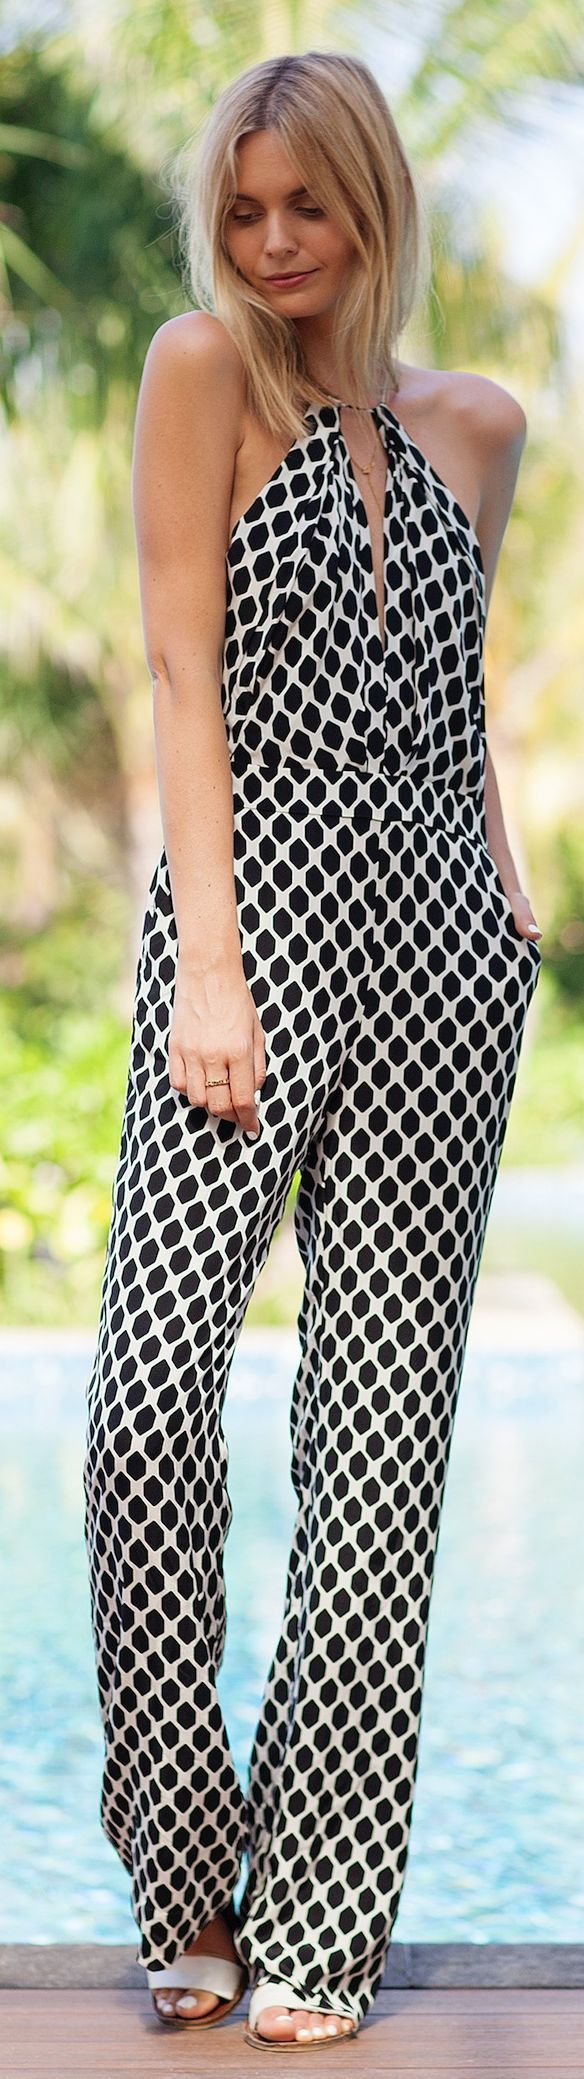 General Pants Co. Black And White Nest Of Bee Print Halter Women's Jumpsuit by Tuula